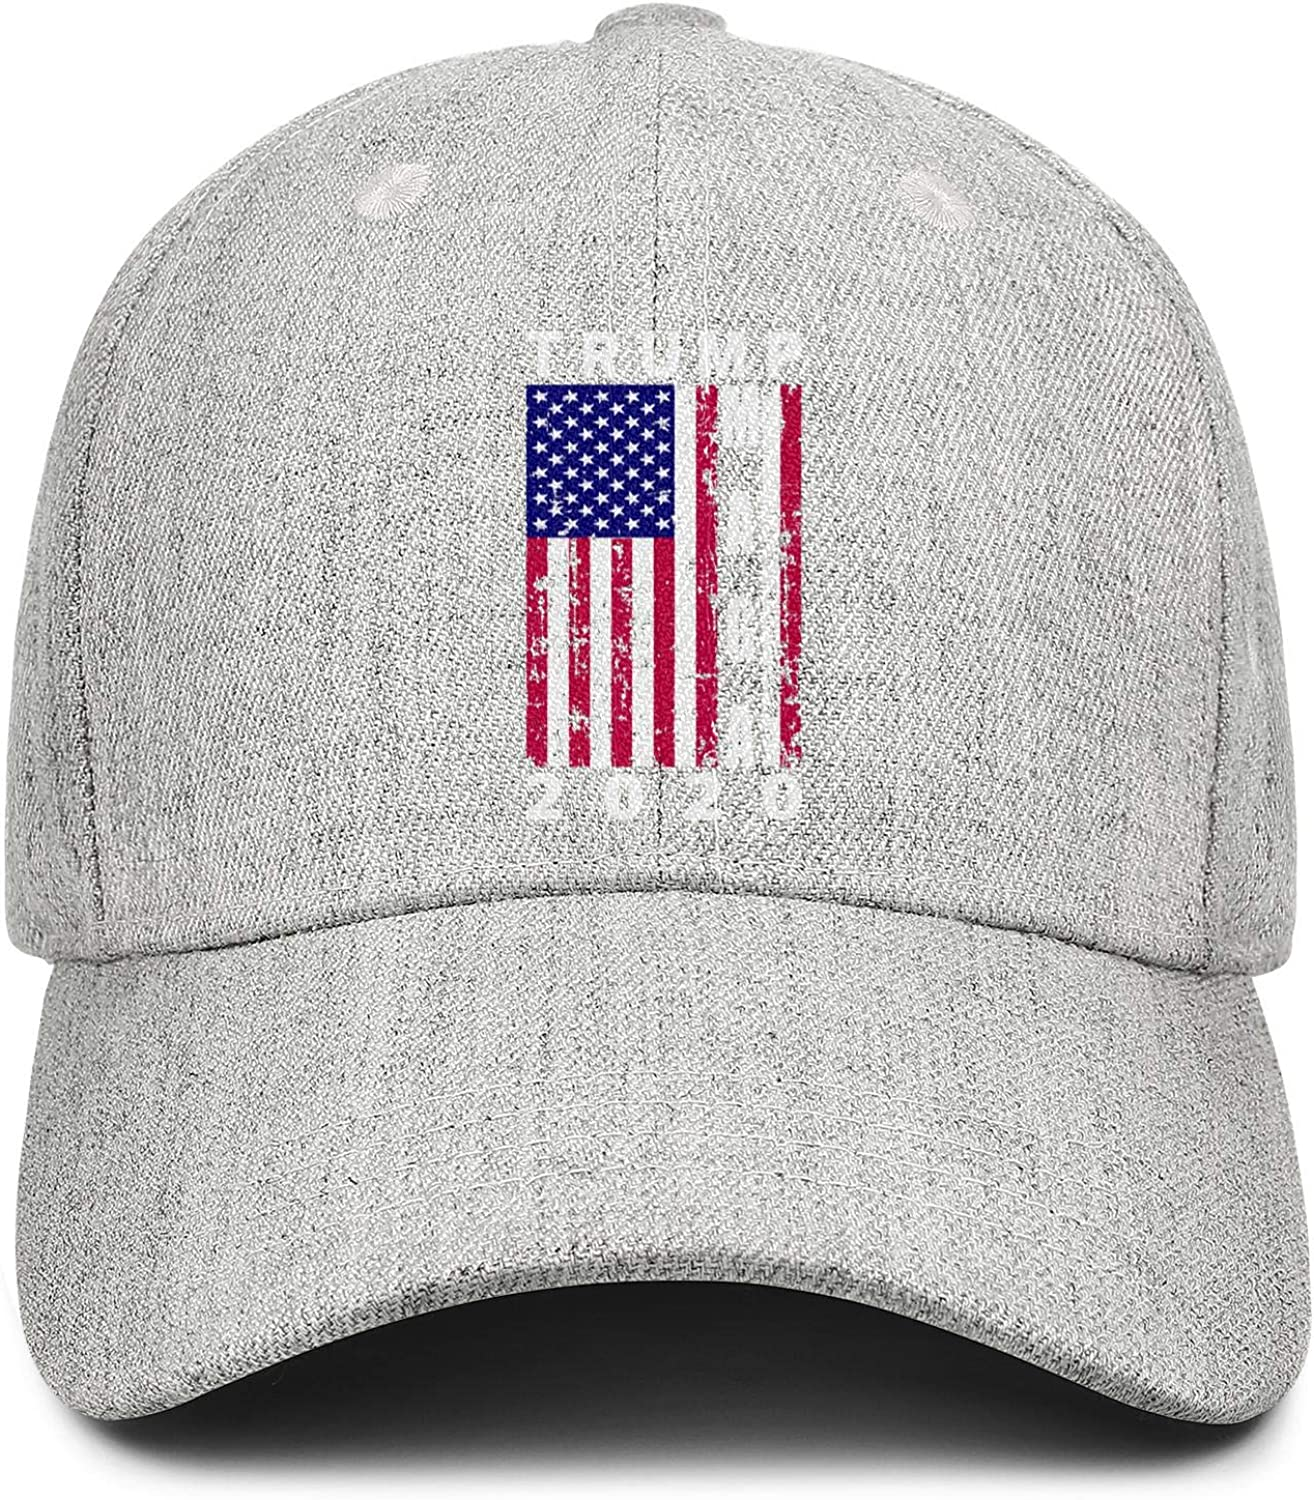 Tired Being Happy Unisex Washed Twill Baseball Cap Adjustable Peaked Sandwich Hat